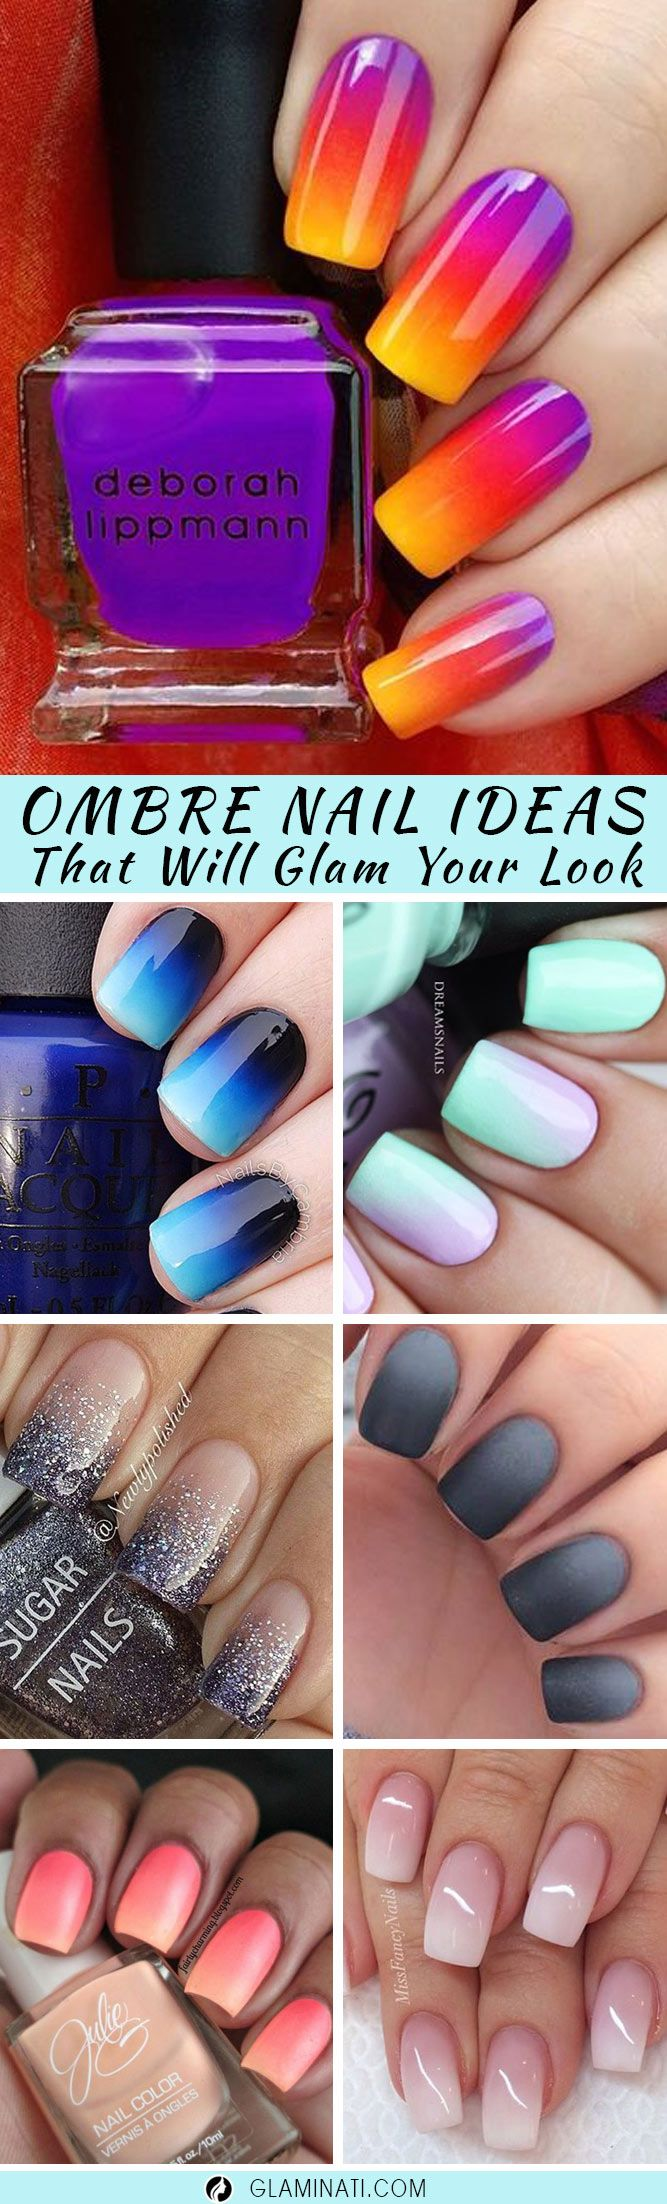 glam ideas ombre nails